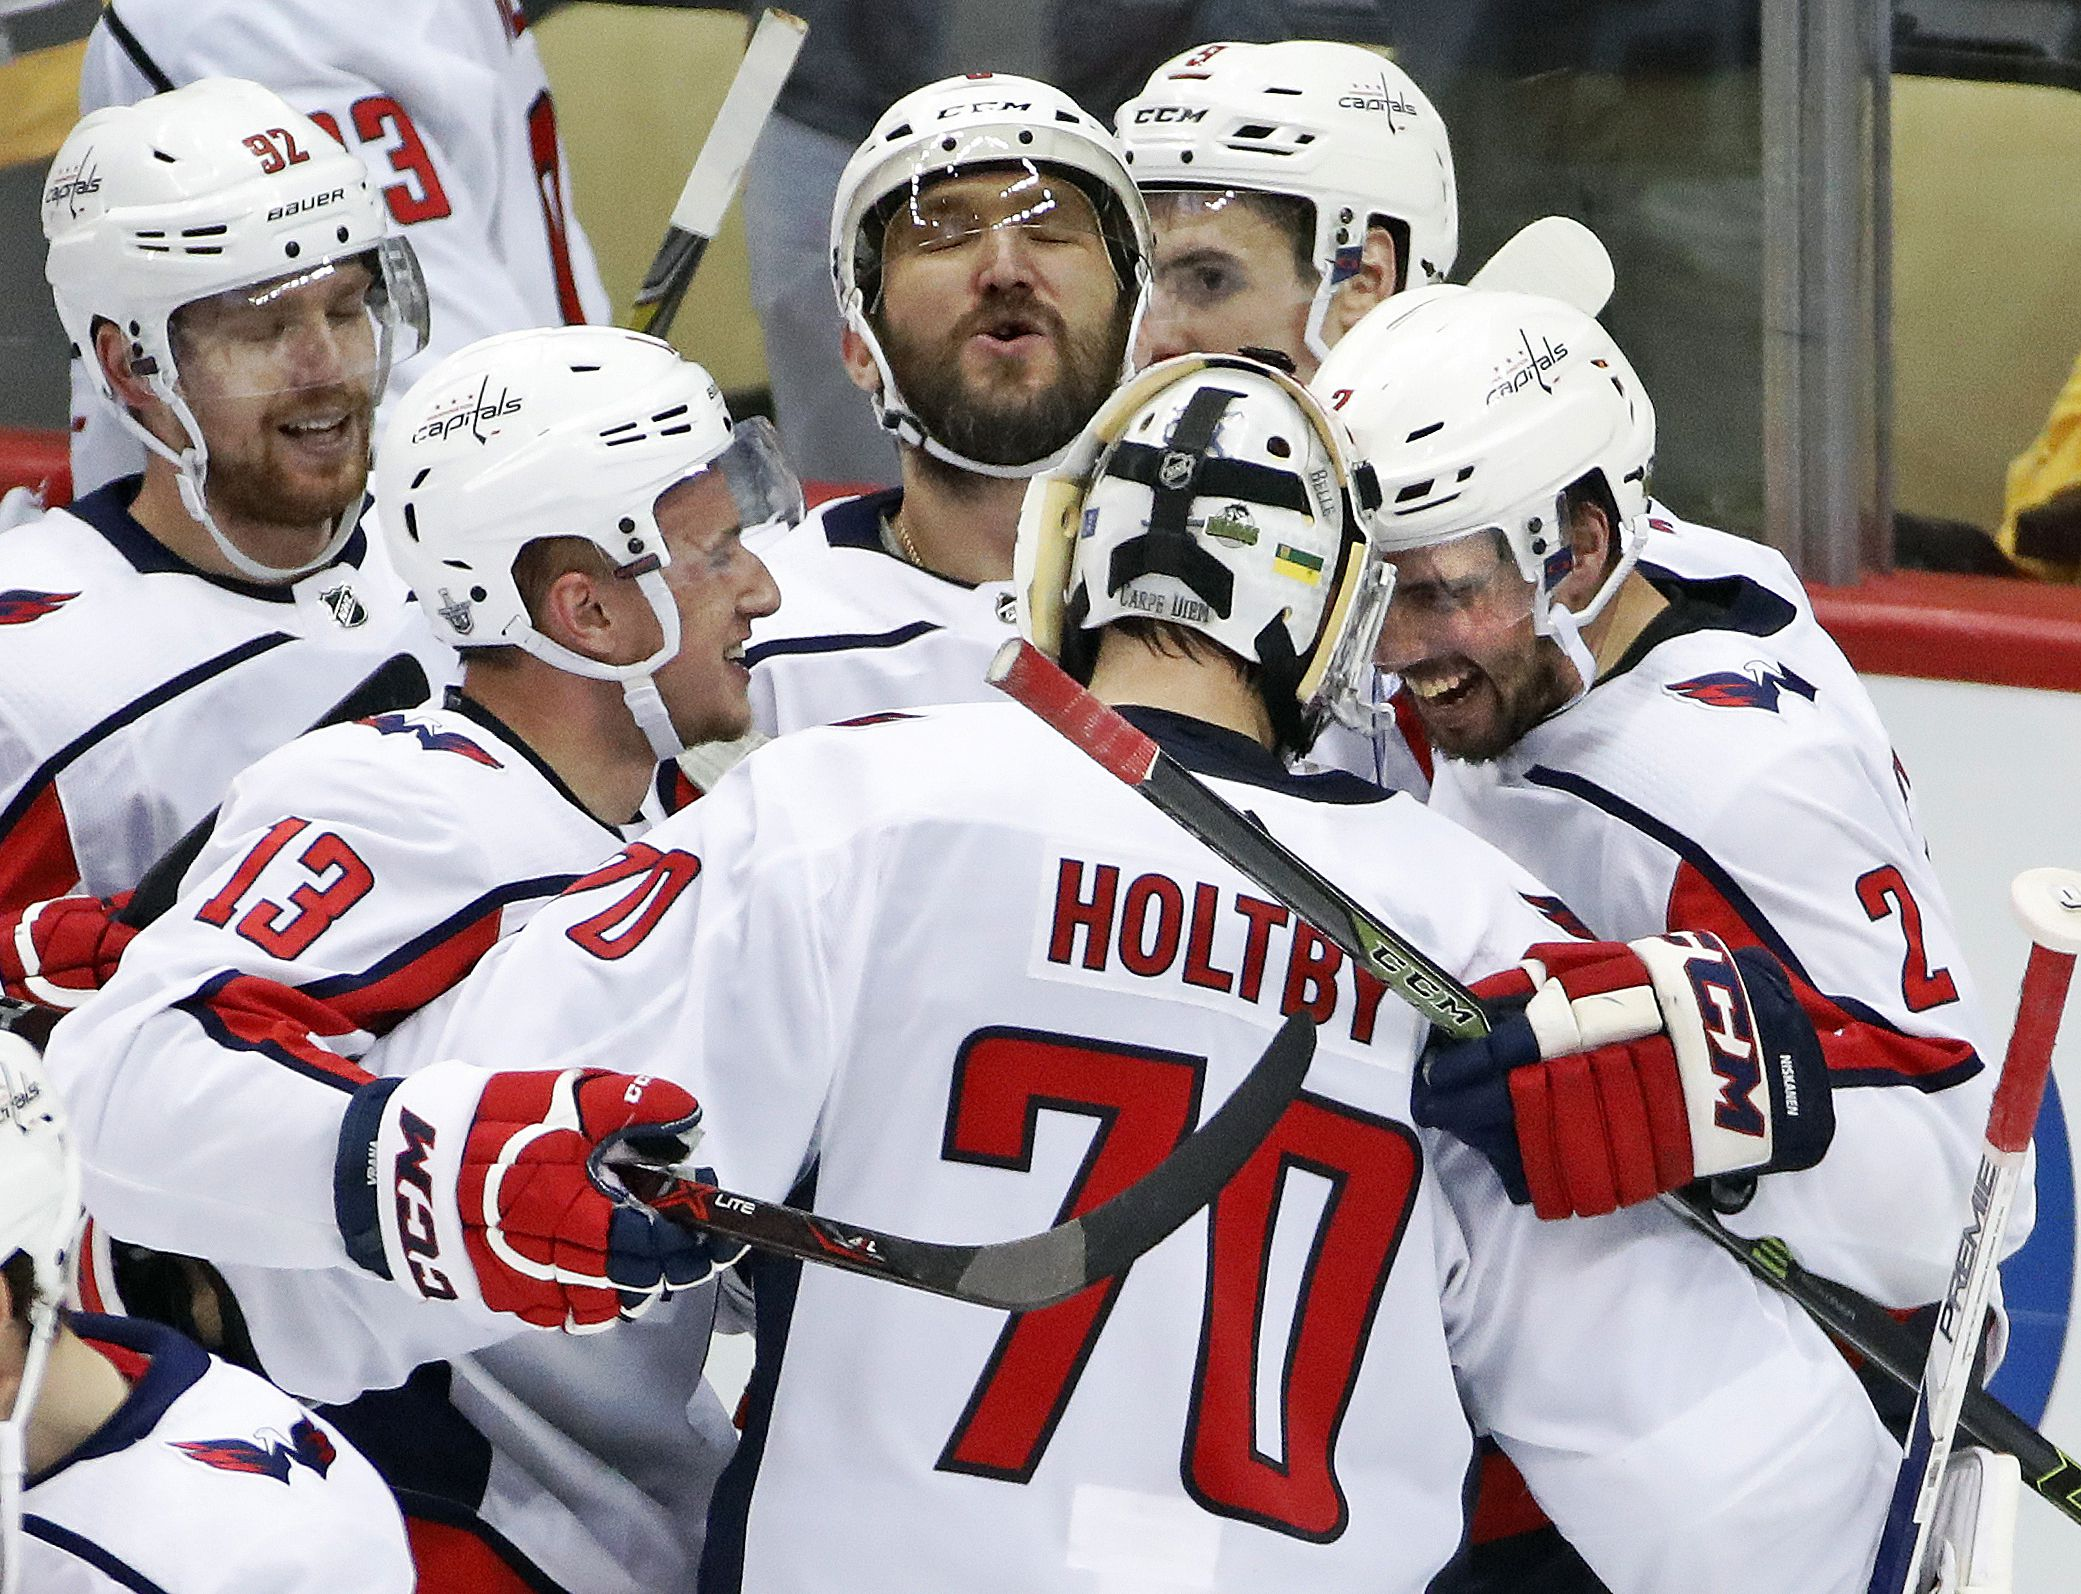 Alexander Ovechkin closes in on the one NHL accolade he s still missing c639c5652